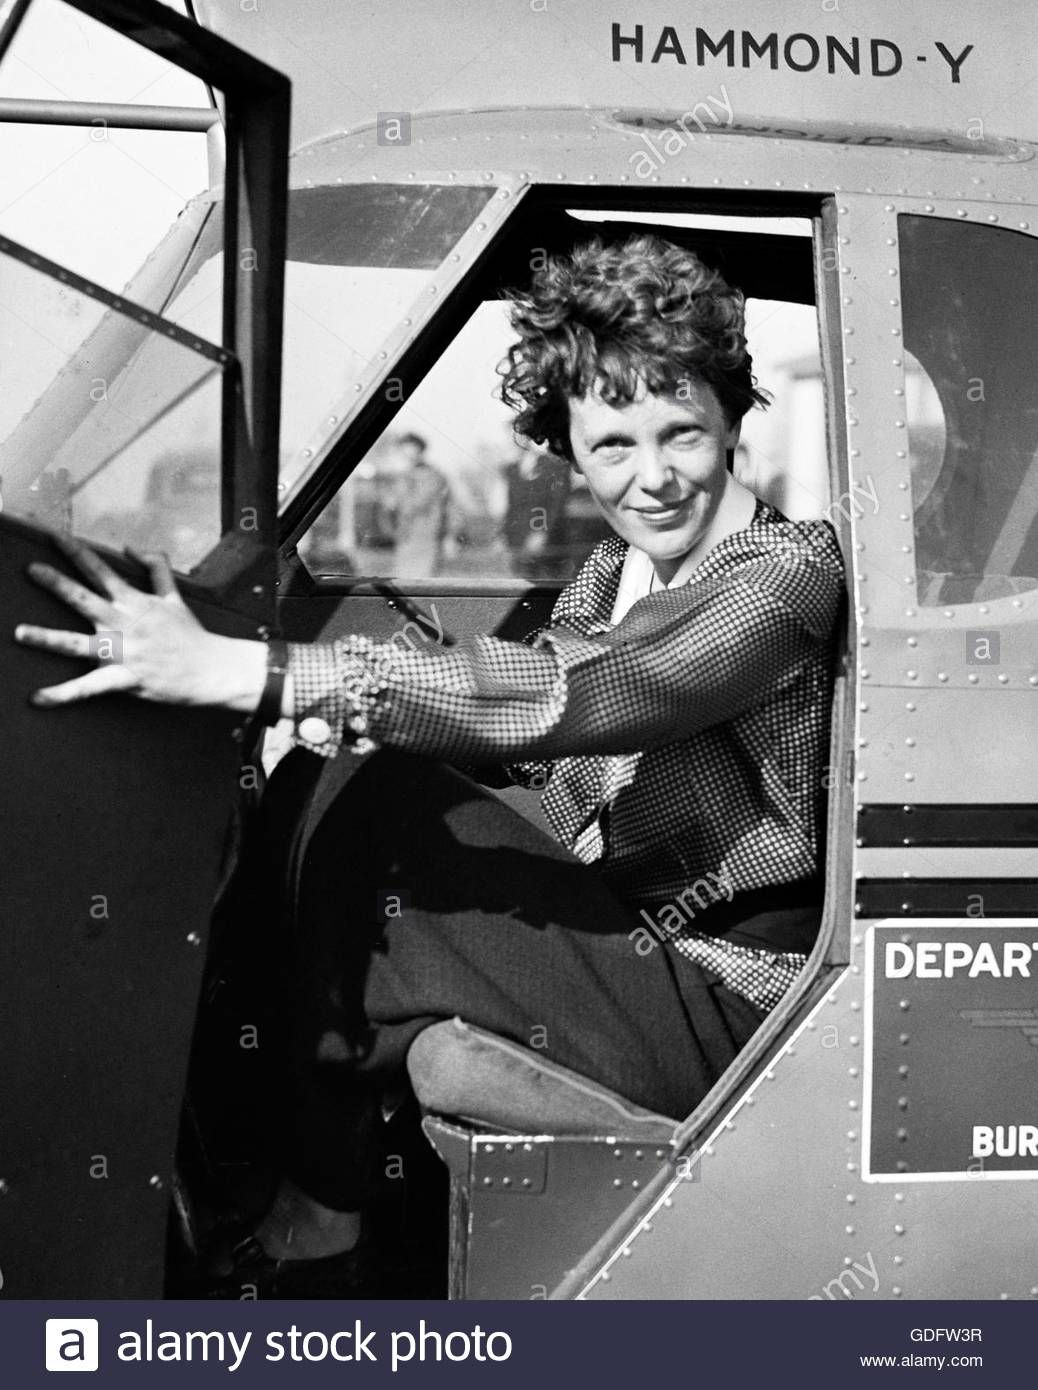 Download this stock image: Amelia Earhart (1897-1937) in the cockpit ...